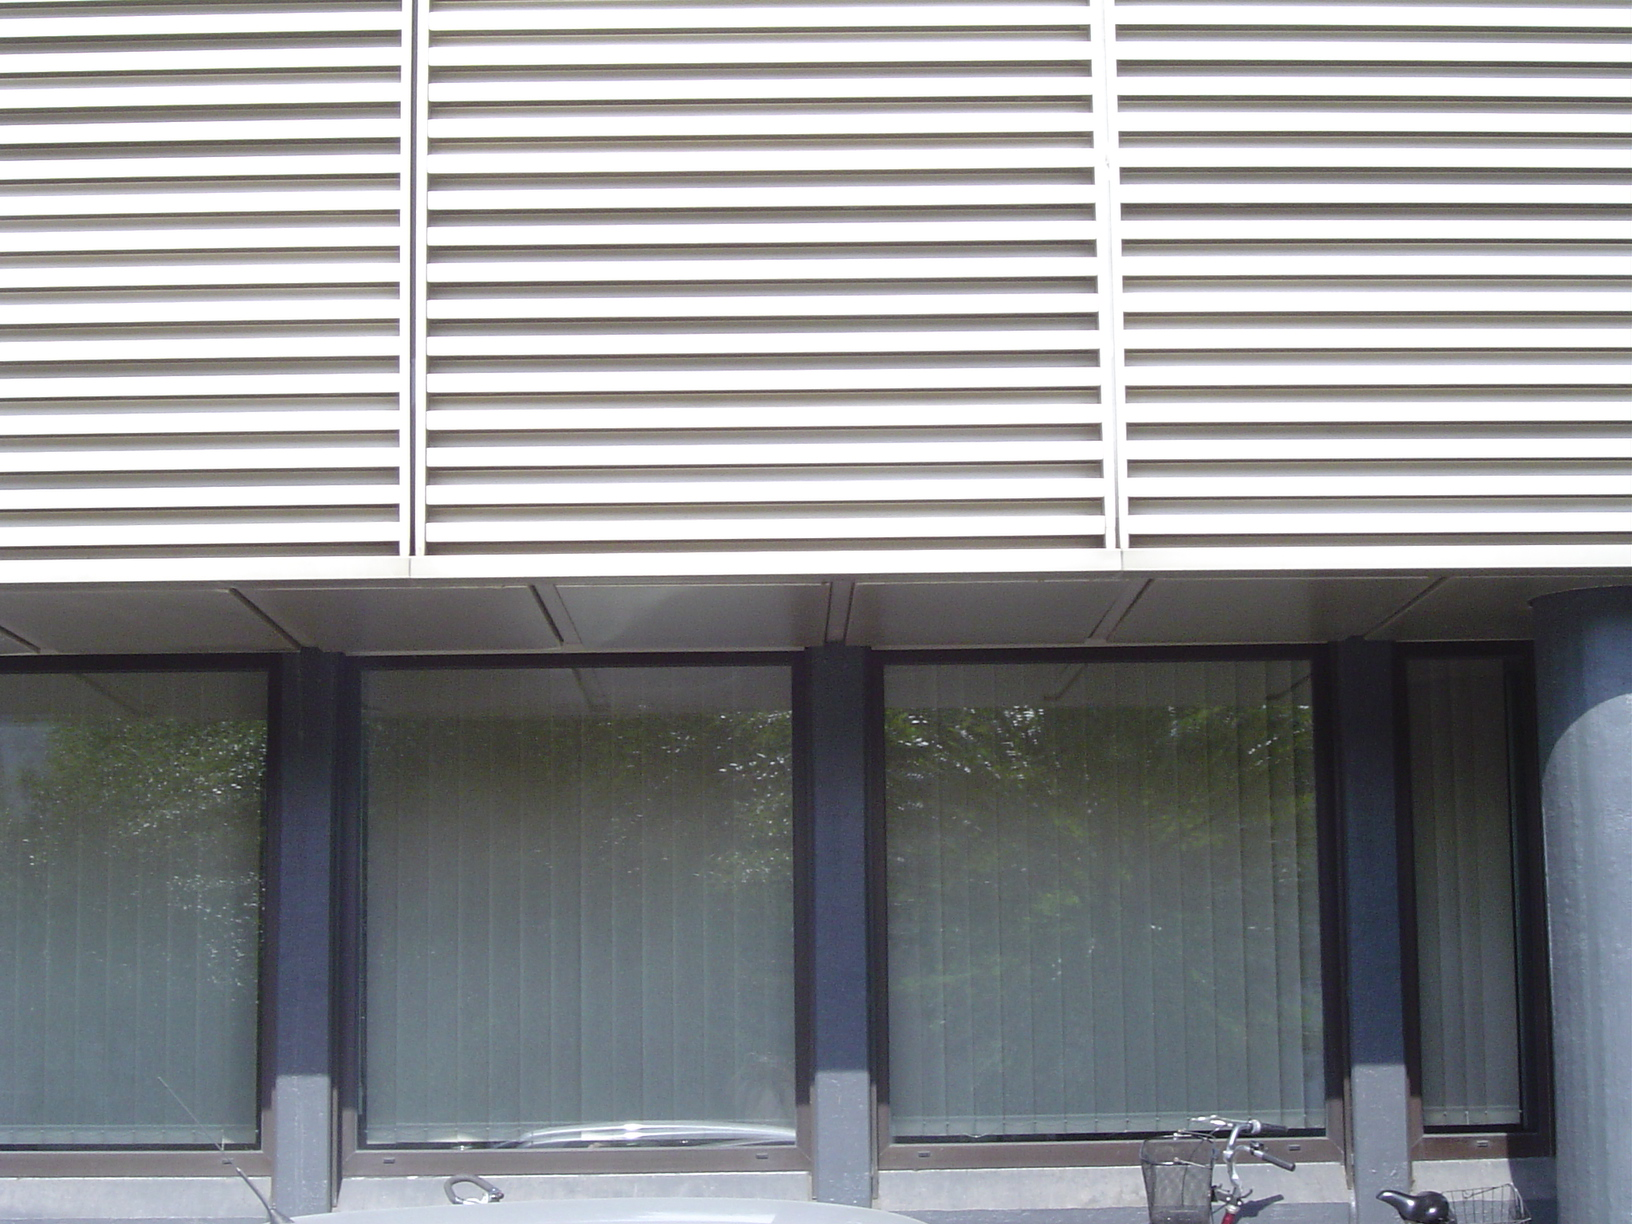 rigoletto wall office building shades windows